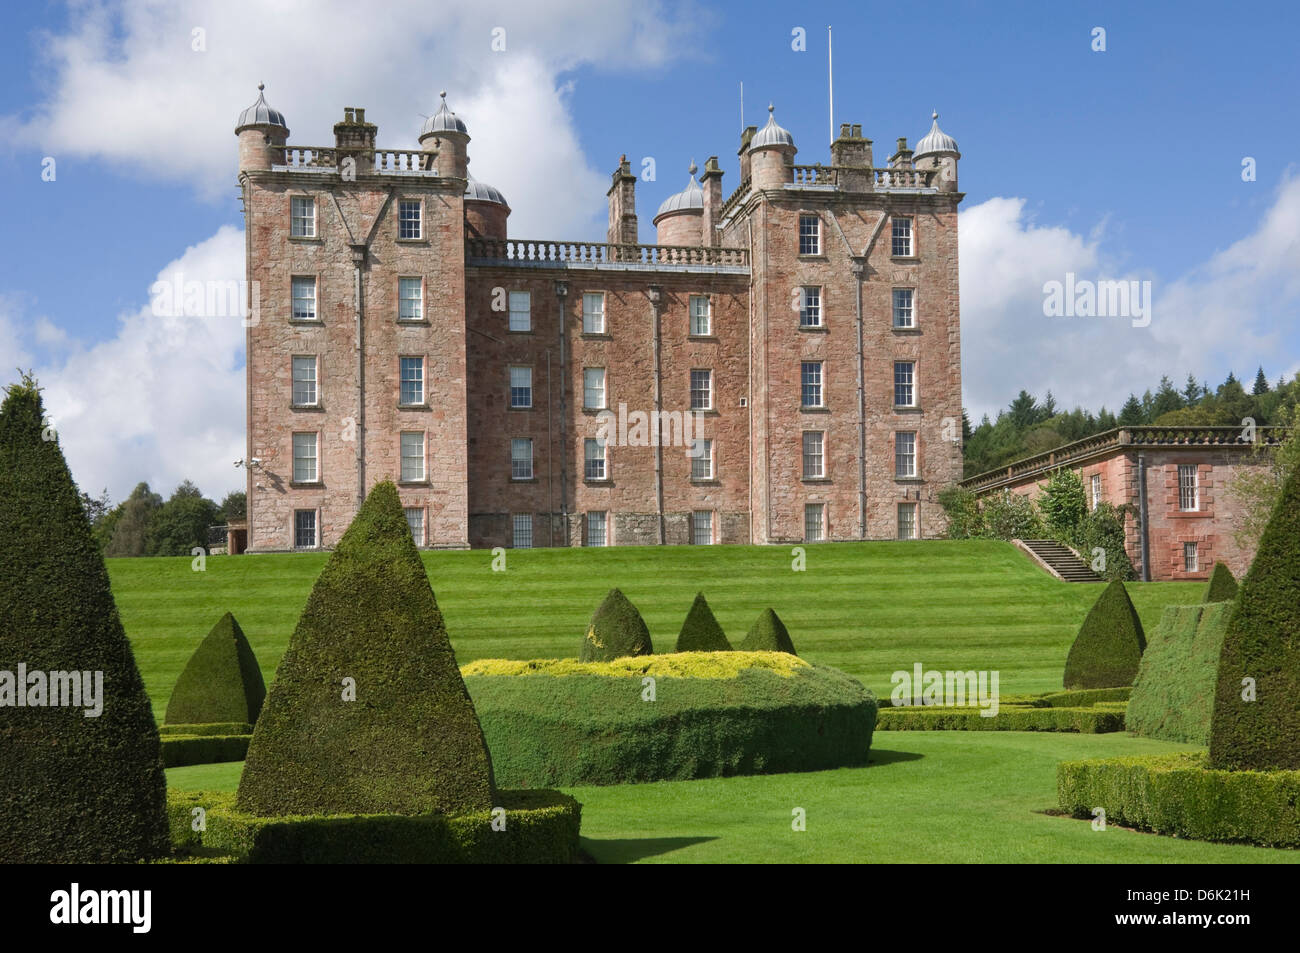 The Topiary Garden at the The Pink Palace built by the 1st Duke of Queensberry, Dumfries and Galloway, Scotland, Stock Photo